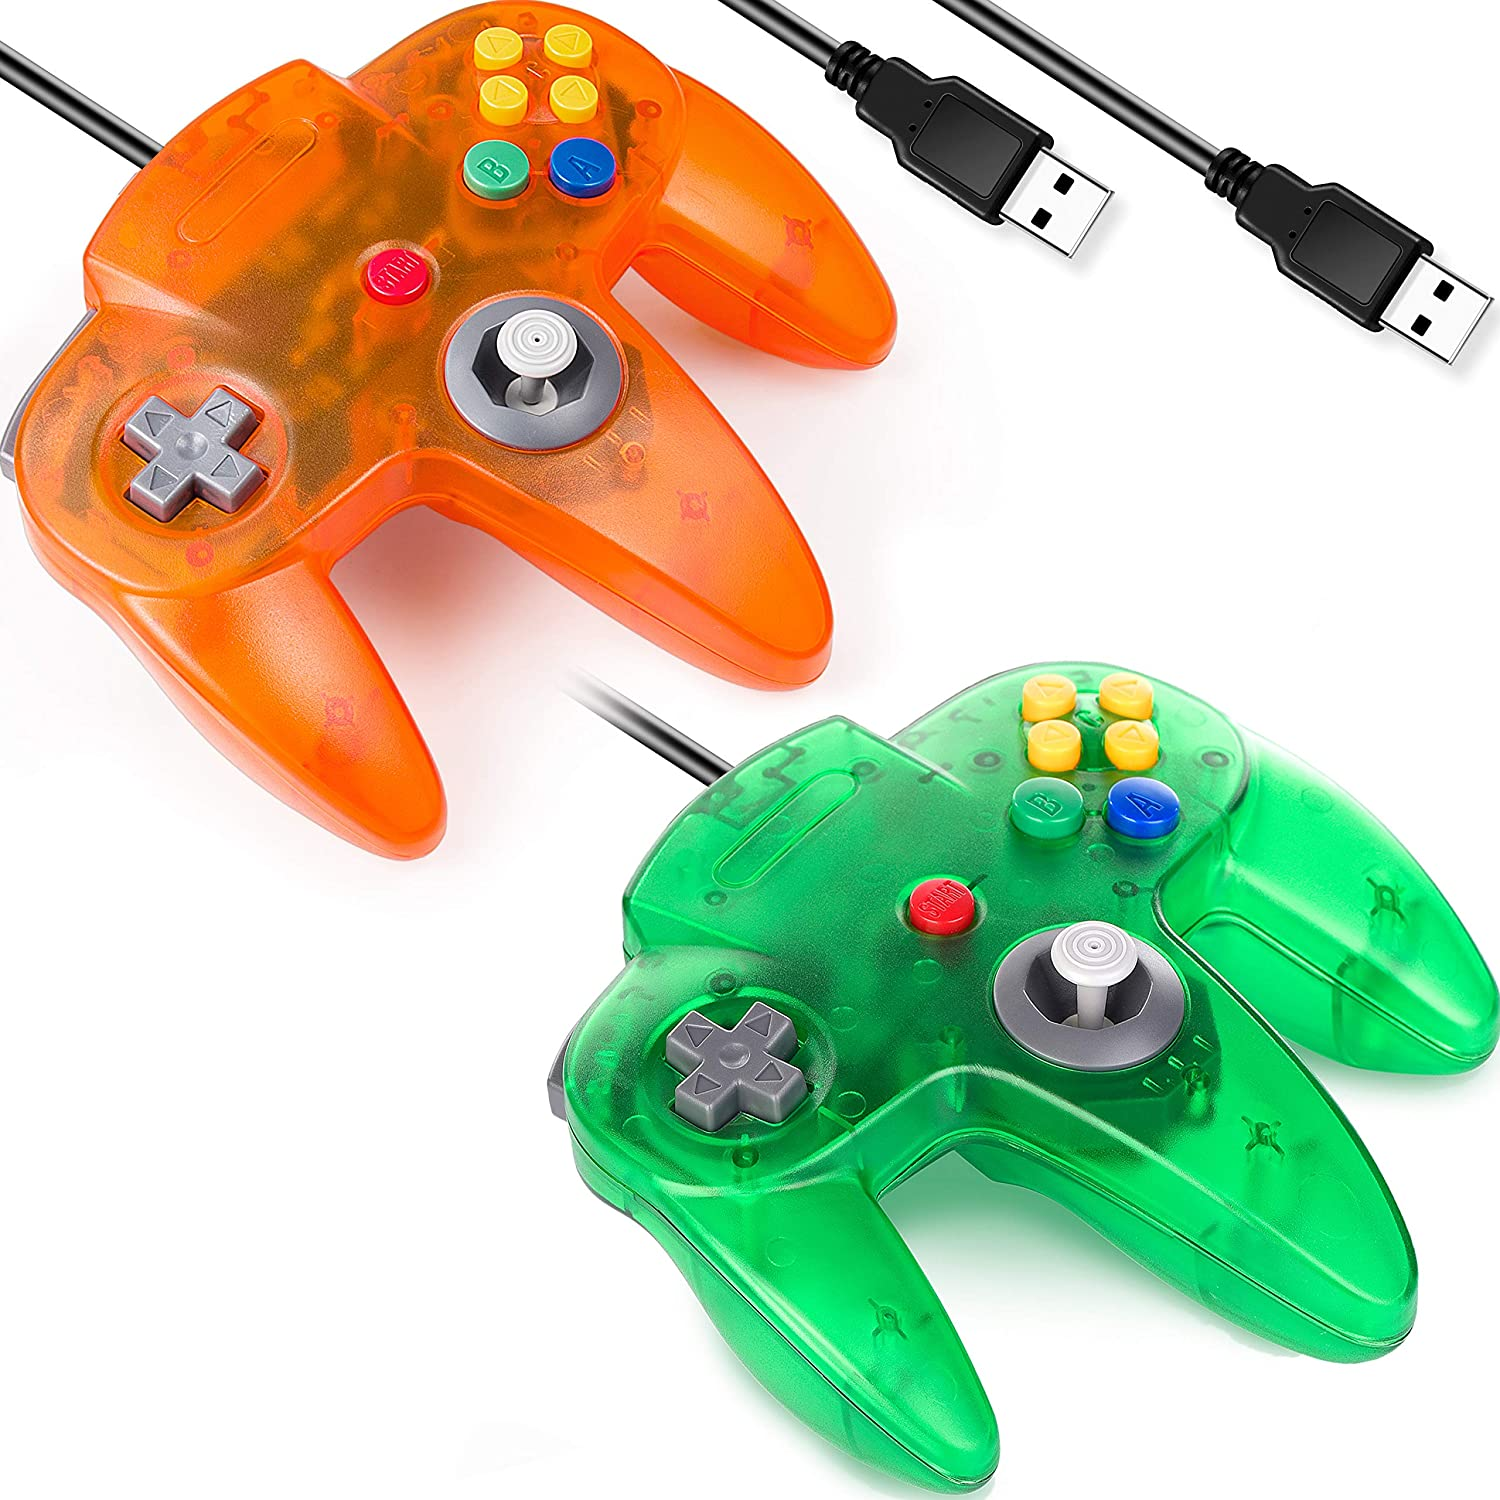 [USB Version] Classic N64 Controller, SAFFUN N64 Wired USB PC Game pad Joystick, N64 Bit USB Stick for Windows PC MAC Linux Genesis Raspberry Pi Retropie Emulator [Plug & Play] (Orange+Green)-2 Pack